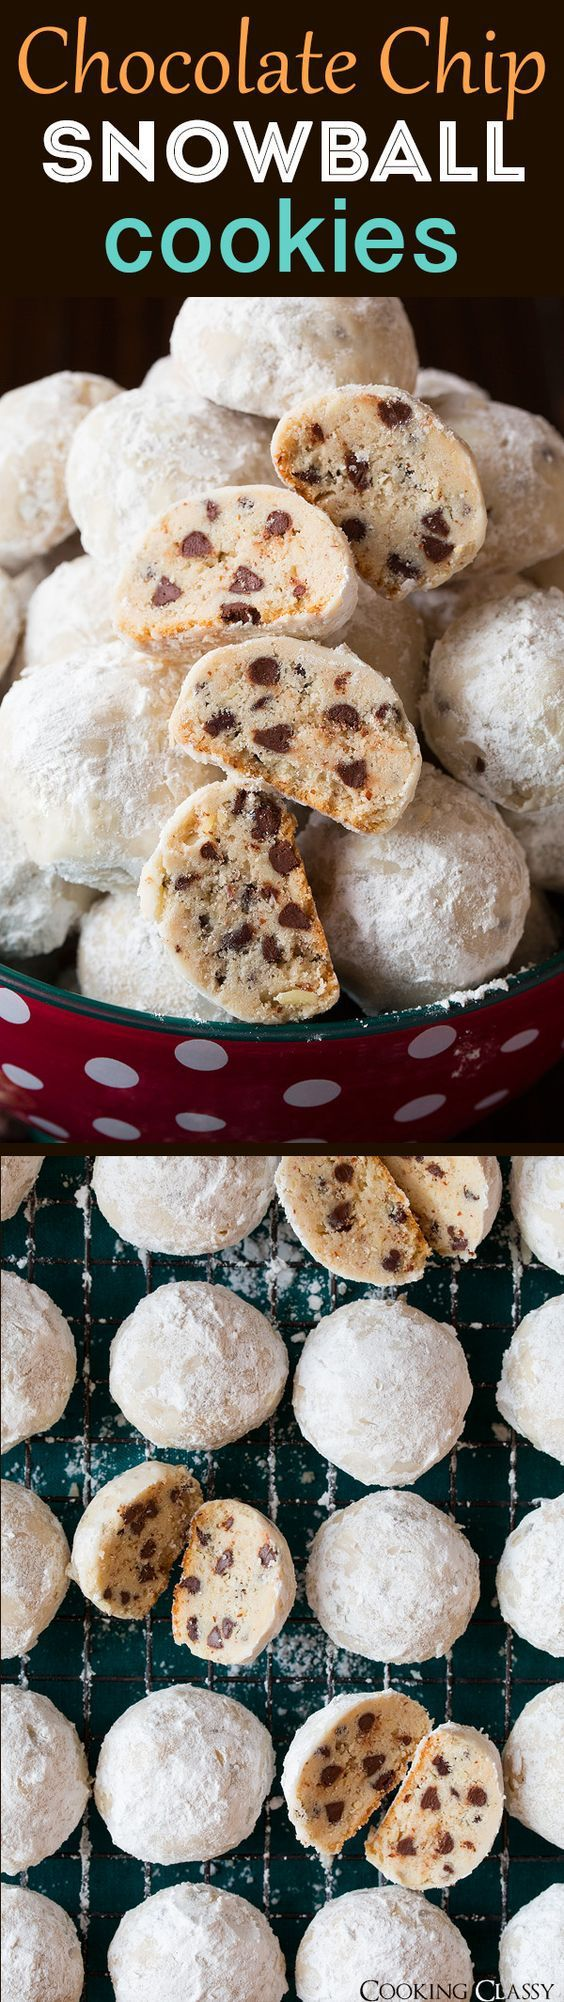 Chocolate Chip Snowball Cookies - 100% irresistible! Get the RECIPE via Cooking Classy